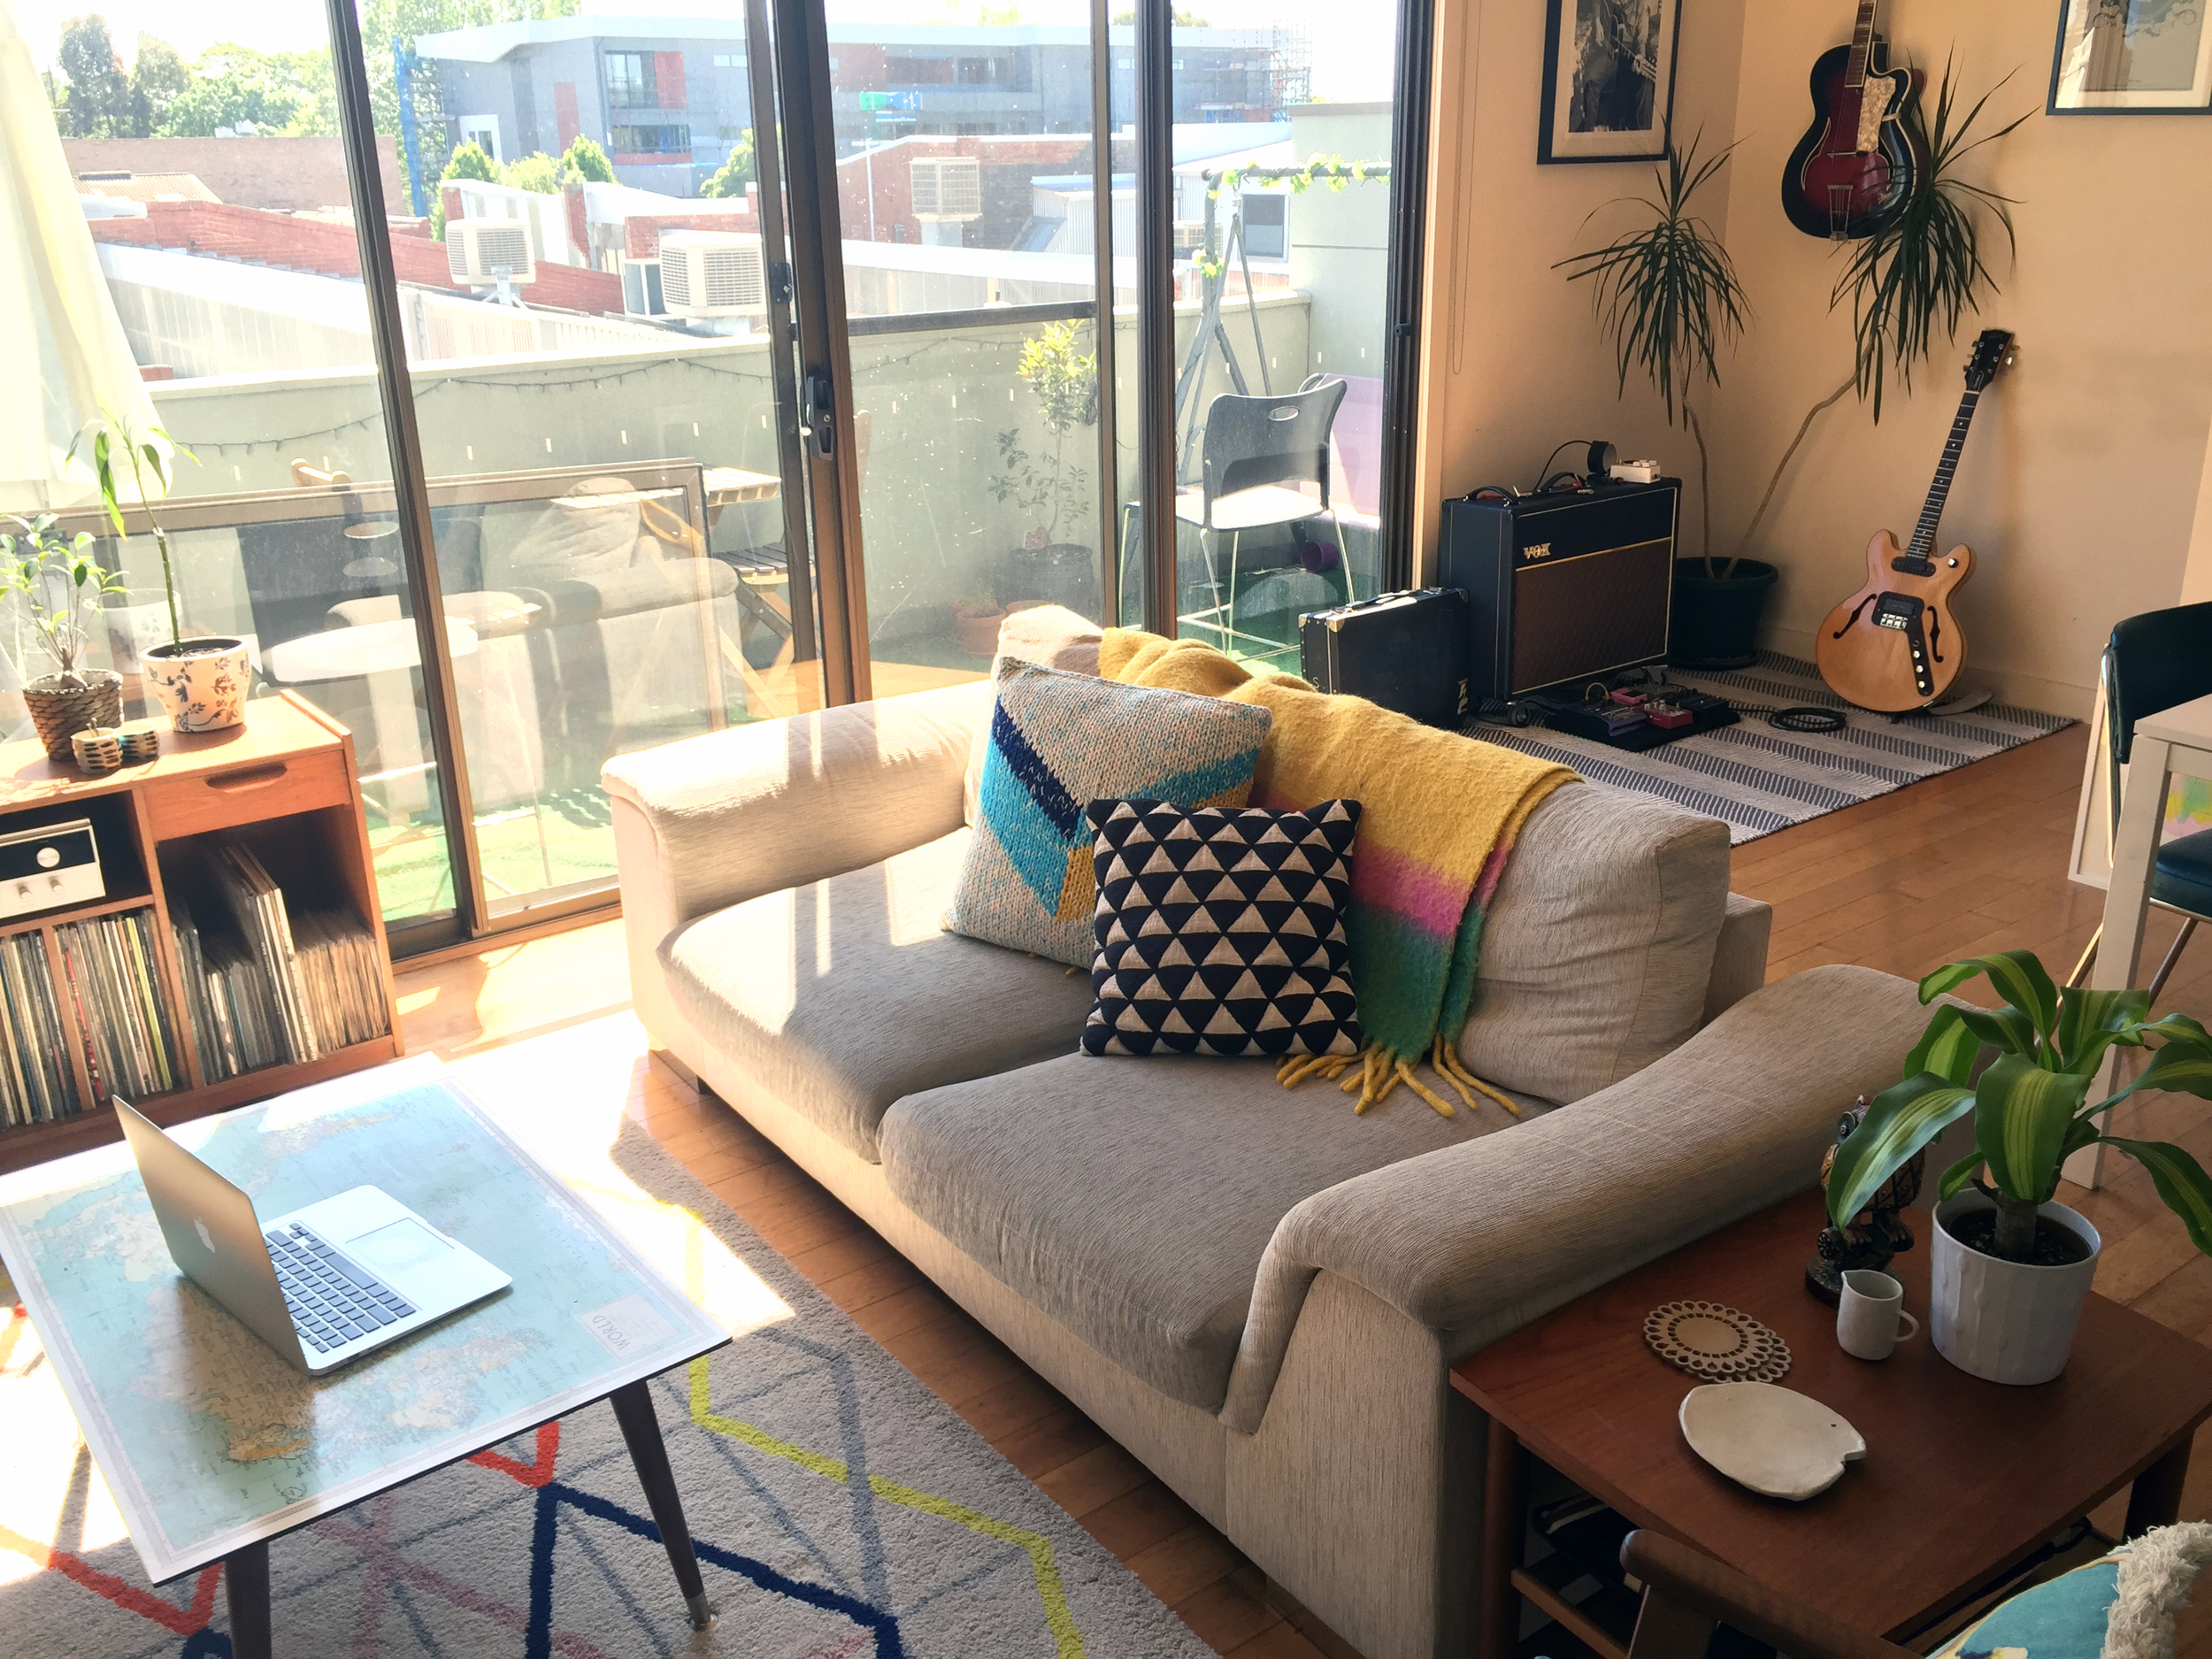 Image: My little apartment